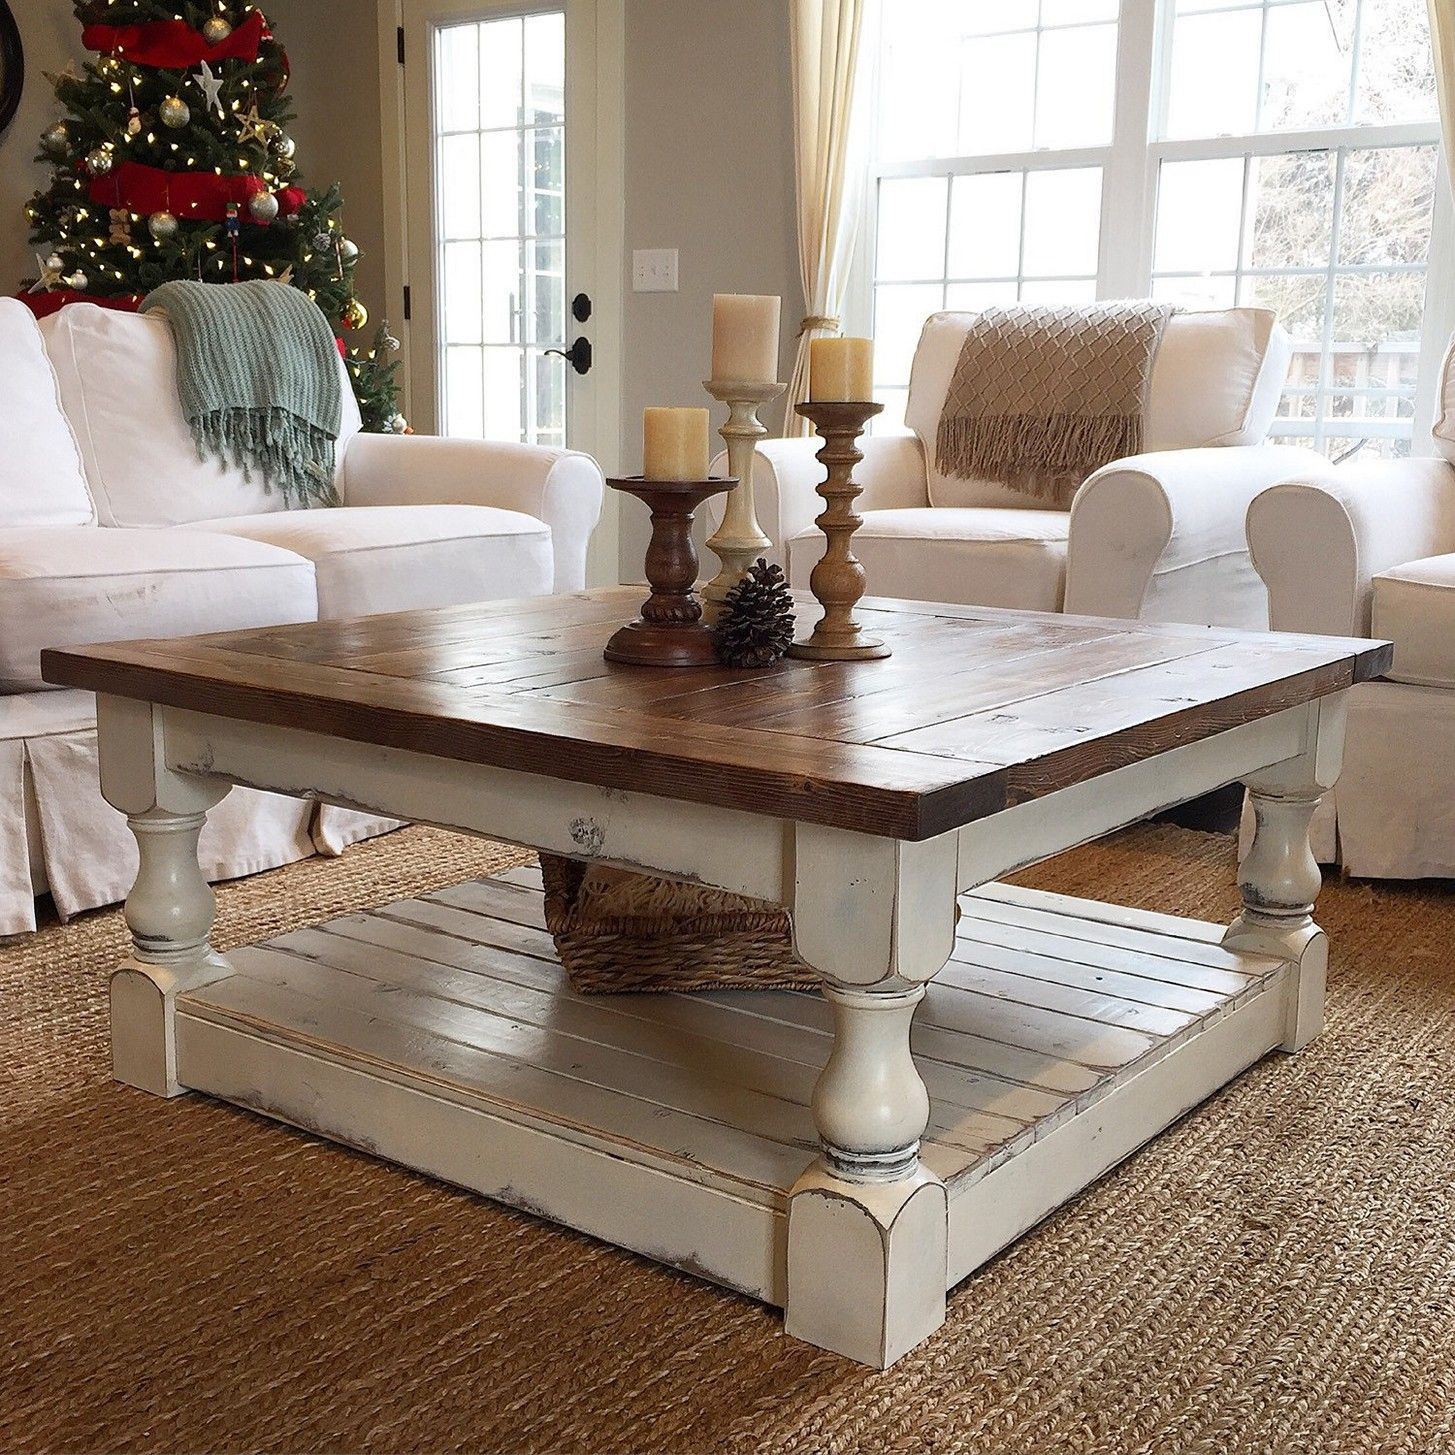 Best ideas about Farmhouse Coffee Table . Save or Pin Chunky Farmhouse Coffee Table … Now.